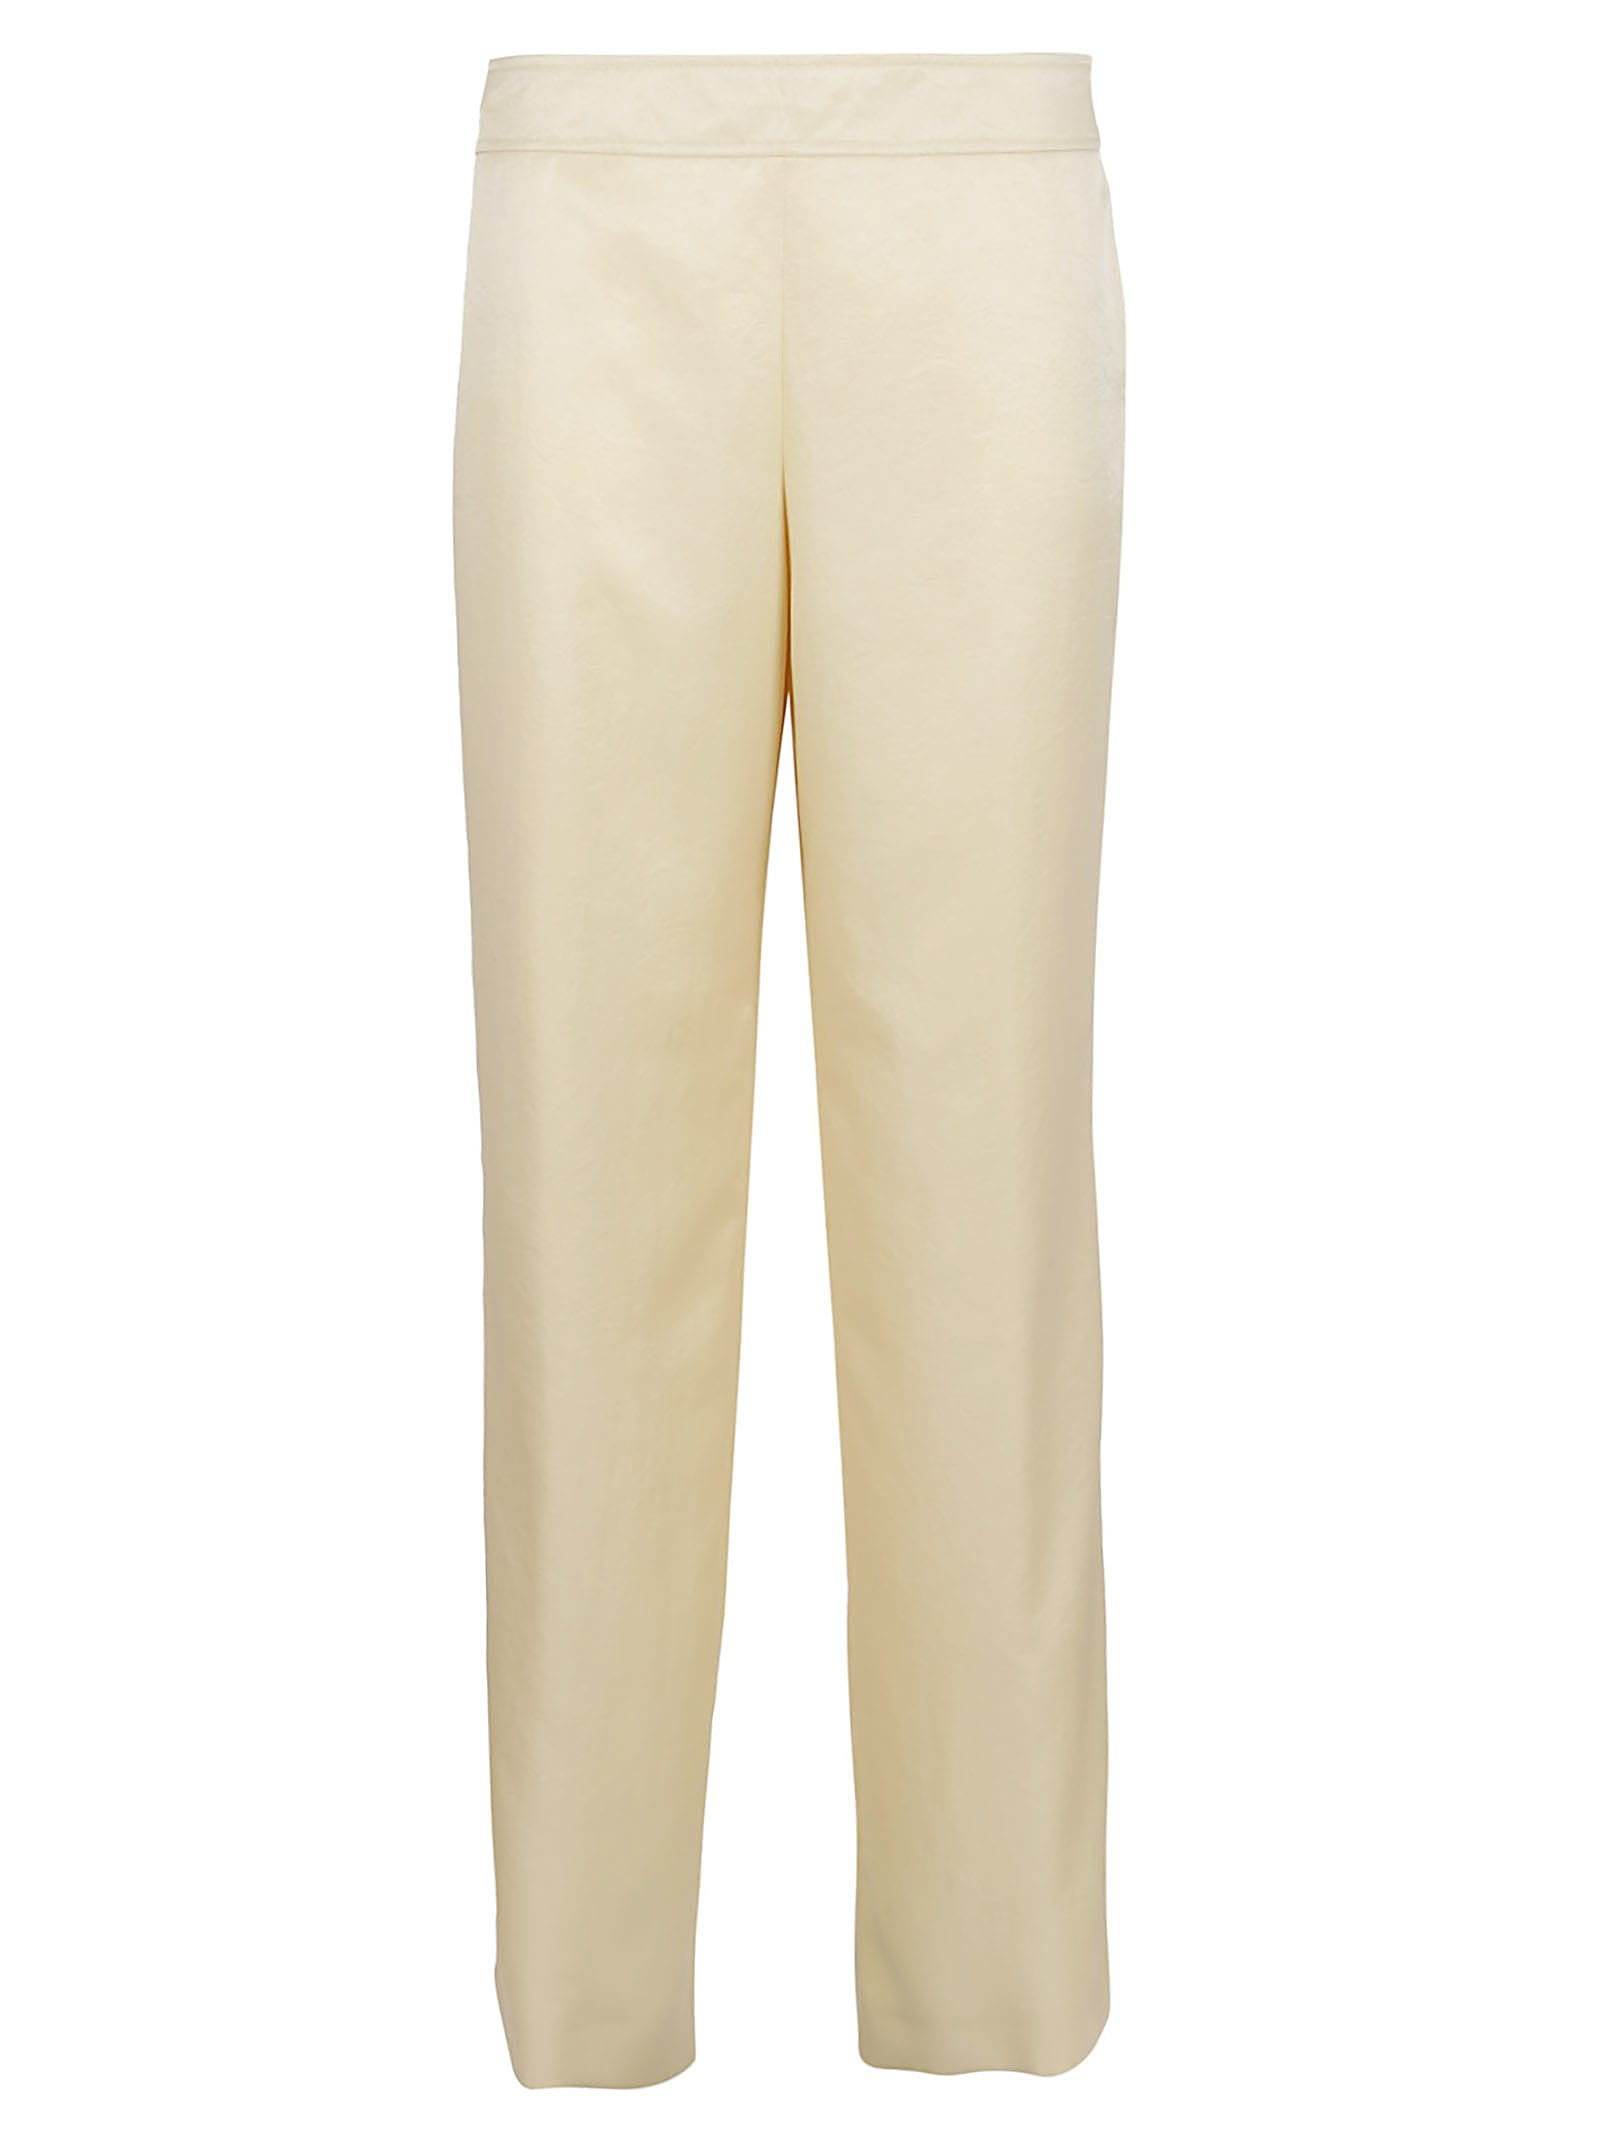 Jil Sander Trouser O 12 Aw 29 - Techno Crinkled Satin